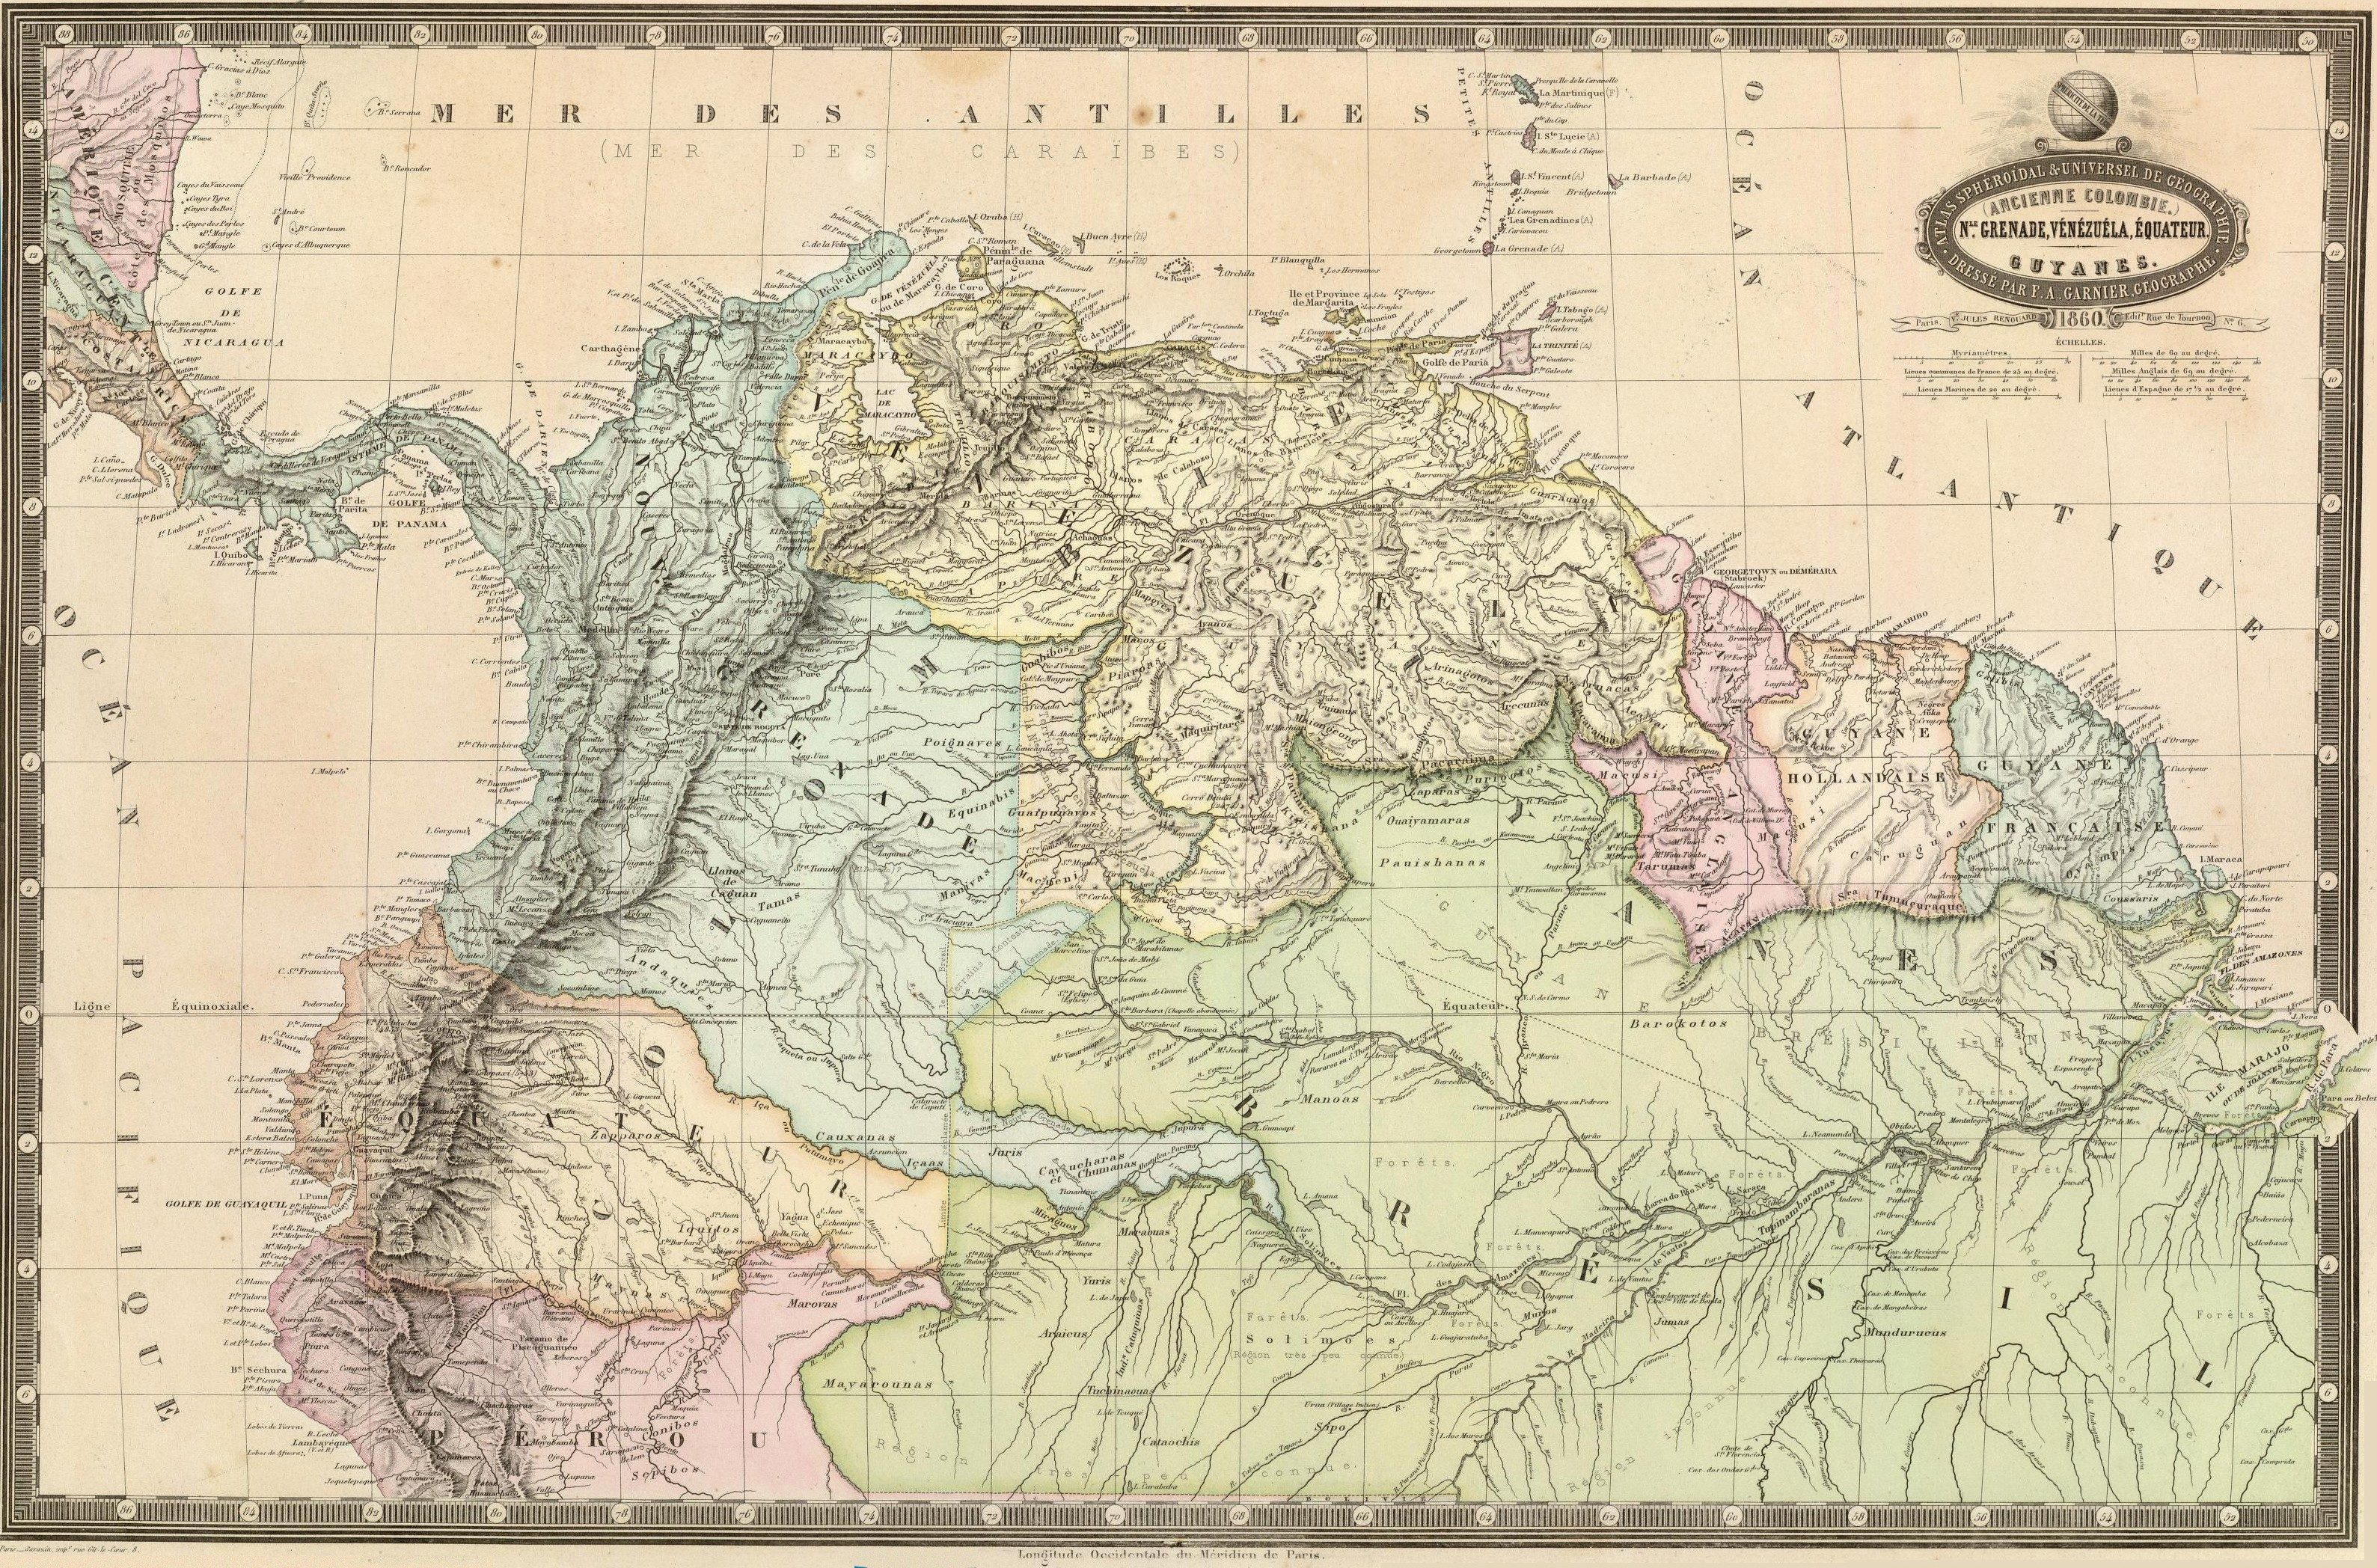 File:Map of the republics of northern South America (1860 ... on map of civil war 1860, map of usa in 1860, map of religion in 1860, map of the united states 1860, map of prussia 1860, map of boston 1860, map of kansas 1860, map of chicago 1860, map of alabama 1860, map of western states in 1860, map of u.s. 1860,